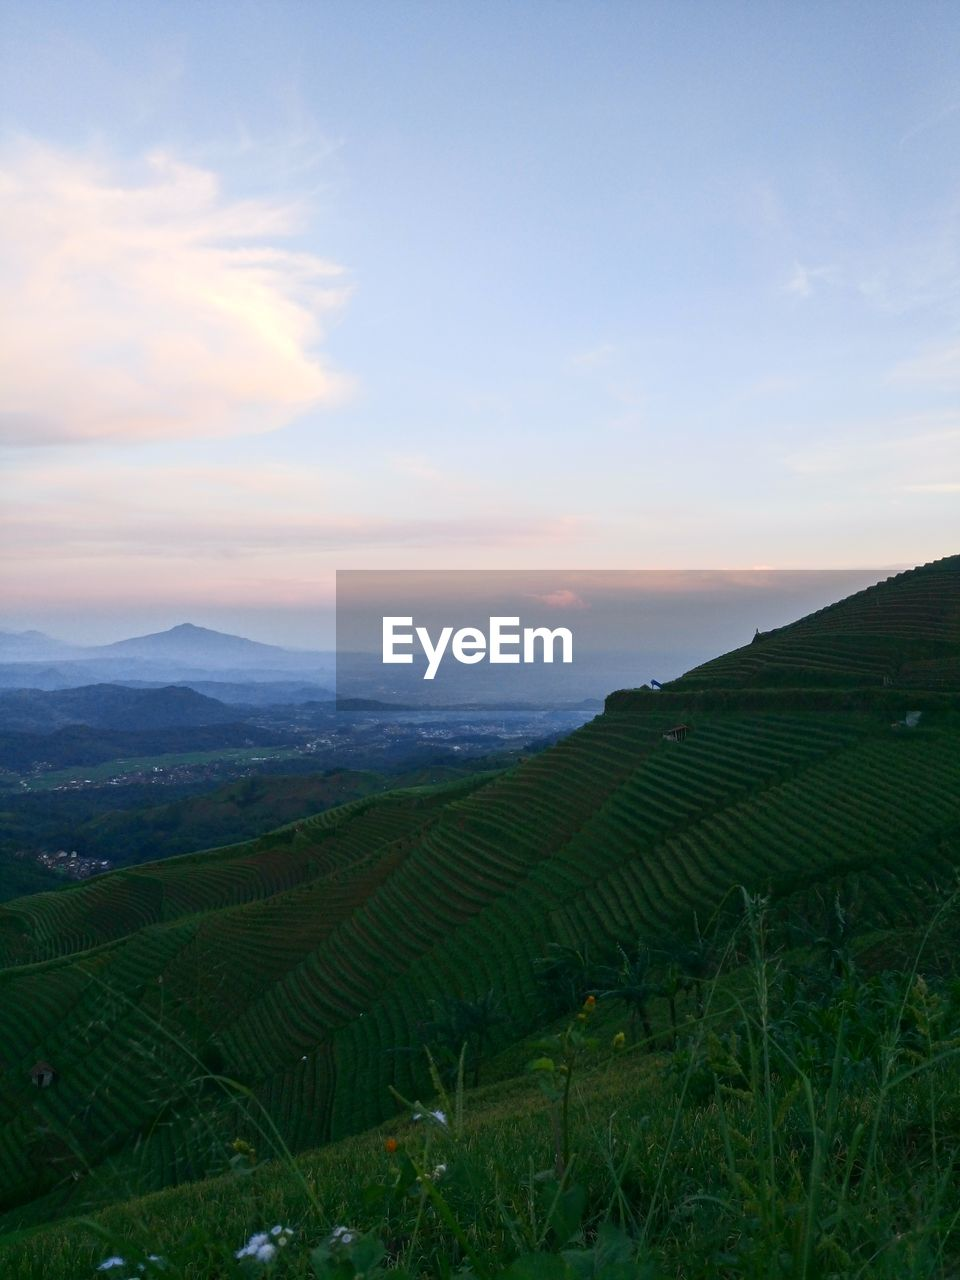 scenics - nature, beauty in nature, landscape, environment, agriculture, tranquil scene, sky, land, rural scene, tranquility, field, plant, farm, growth, sunset, nature, no people, green color, mountain, idyllic, outdoors, plantation, tea crop